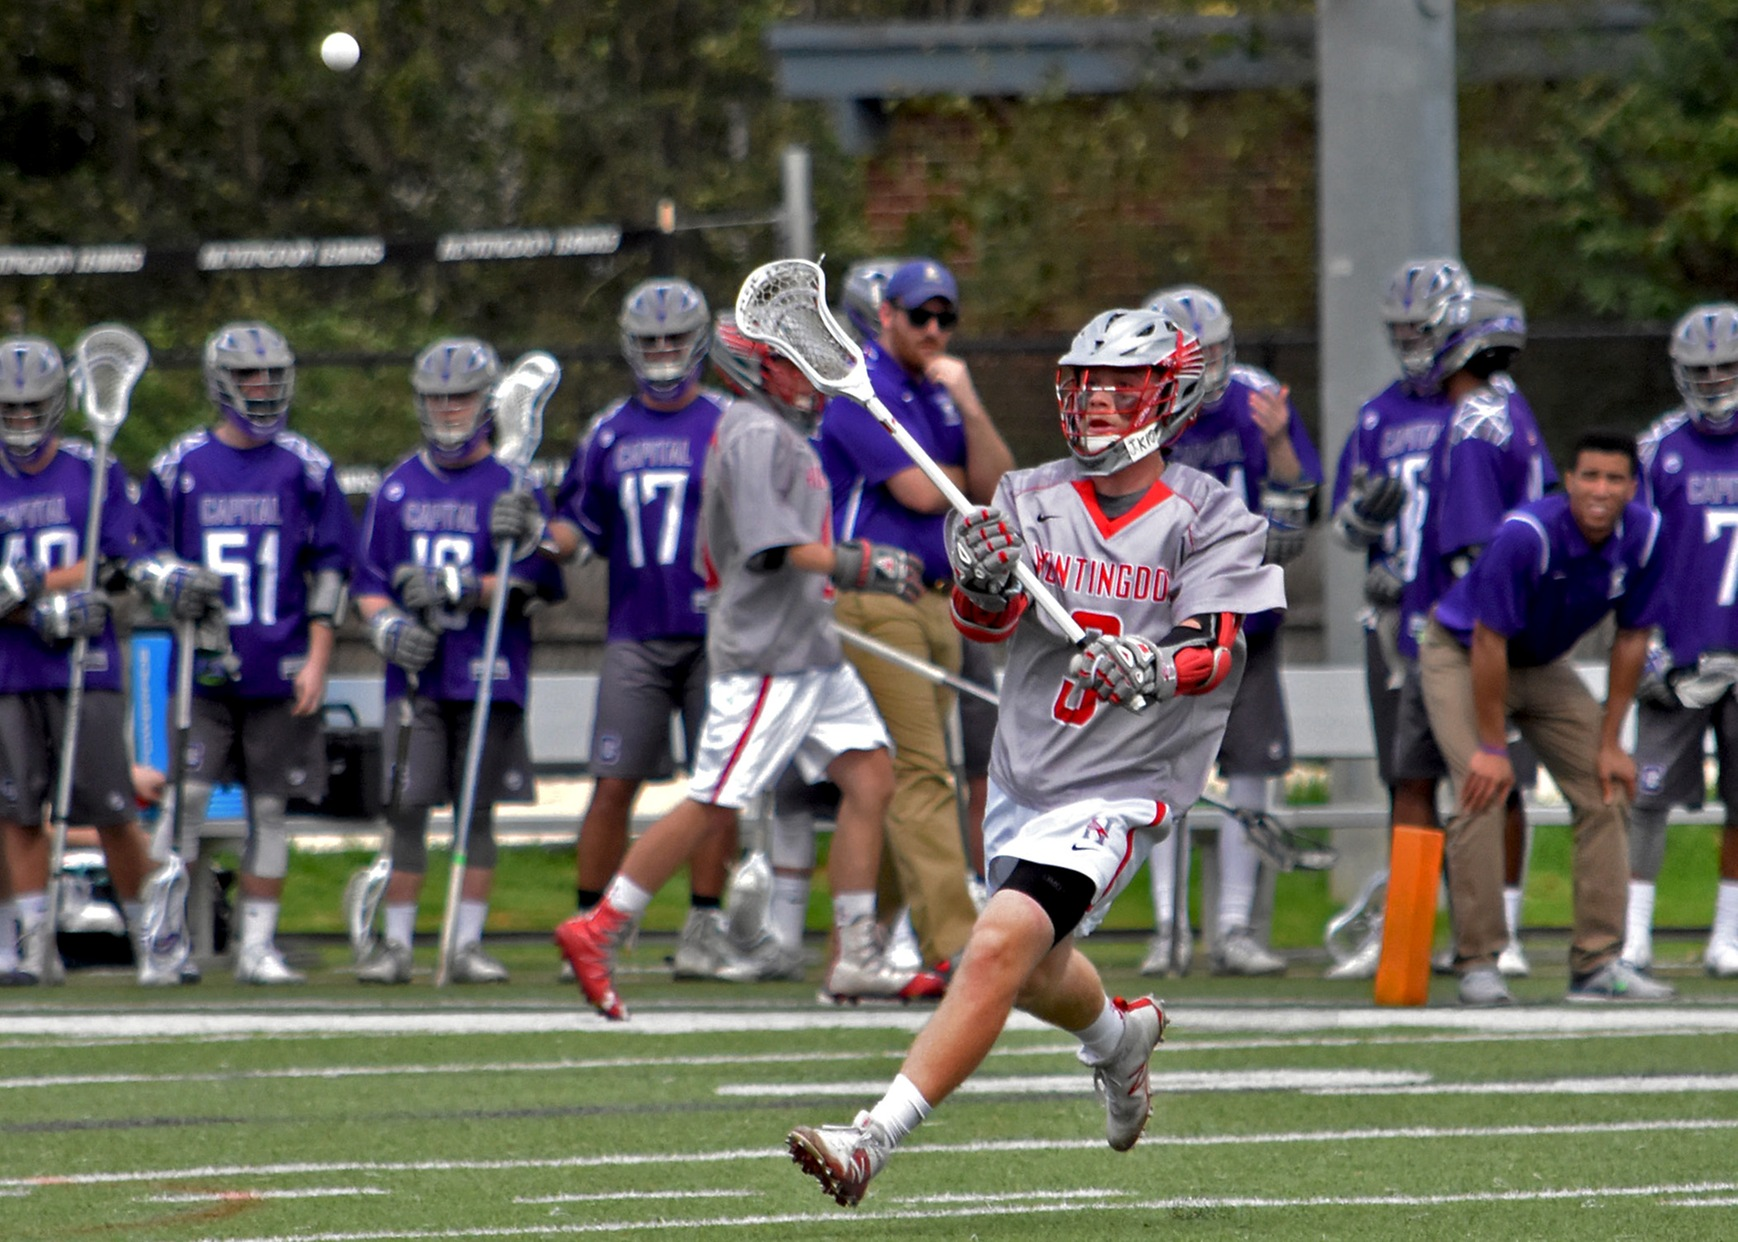 Sophomore Miles Stading scored four goals in Monday's 15-10 loss to Southwestern. (Photo by Wesley Lyle)